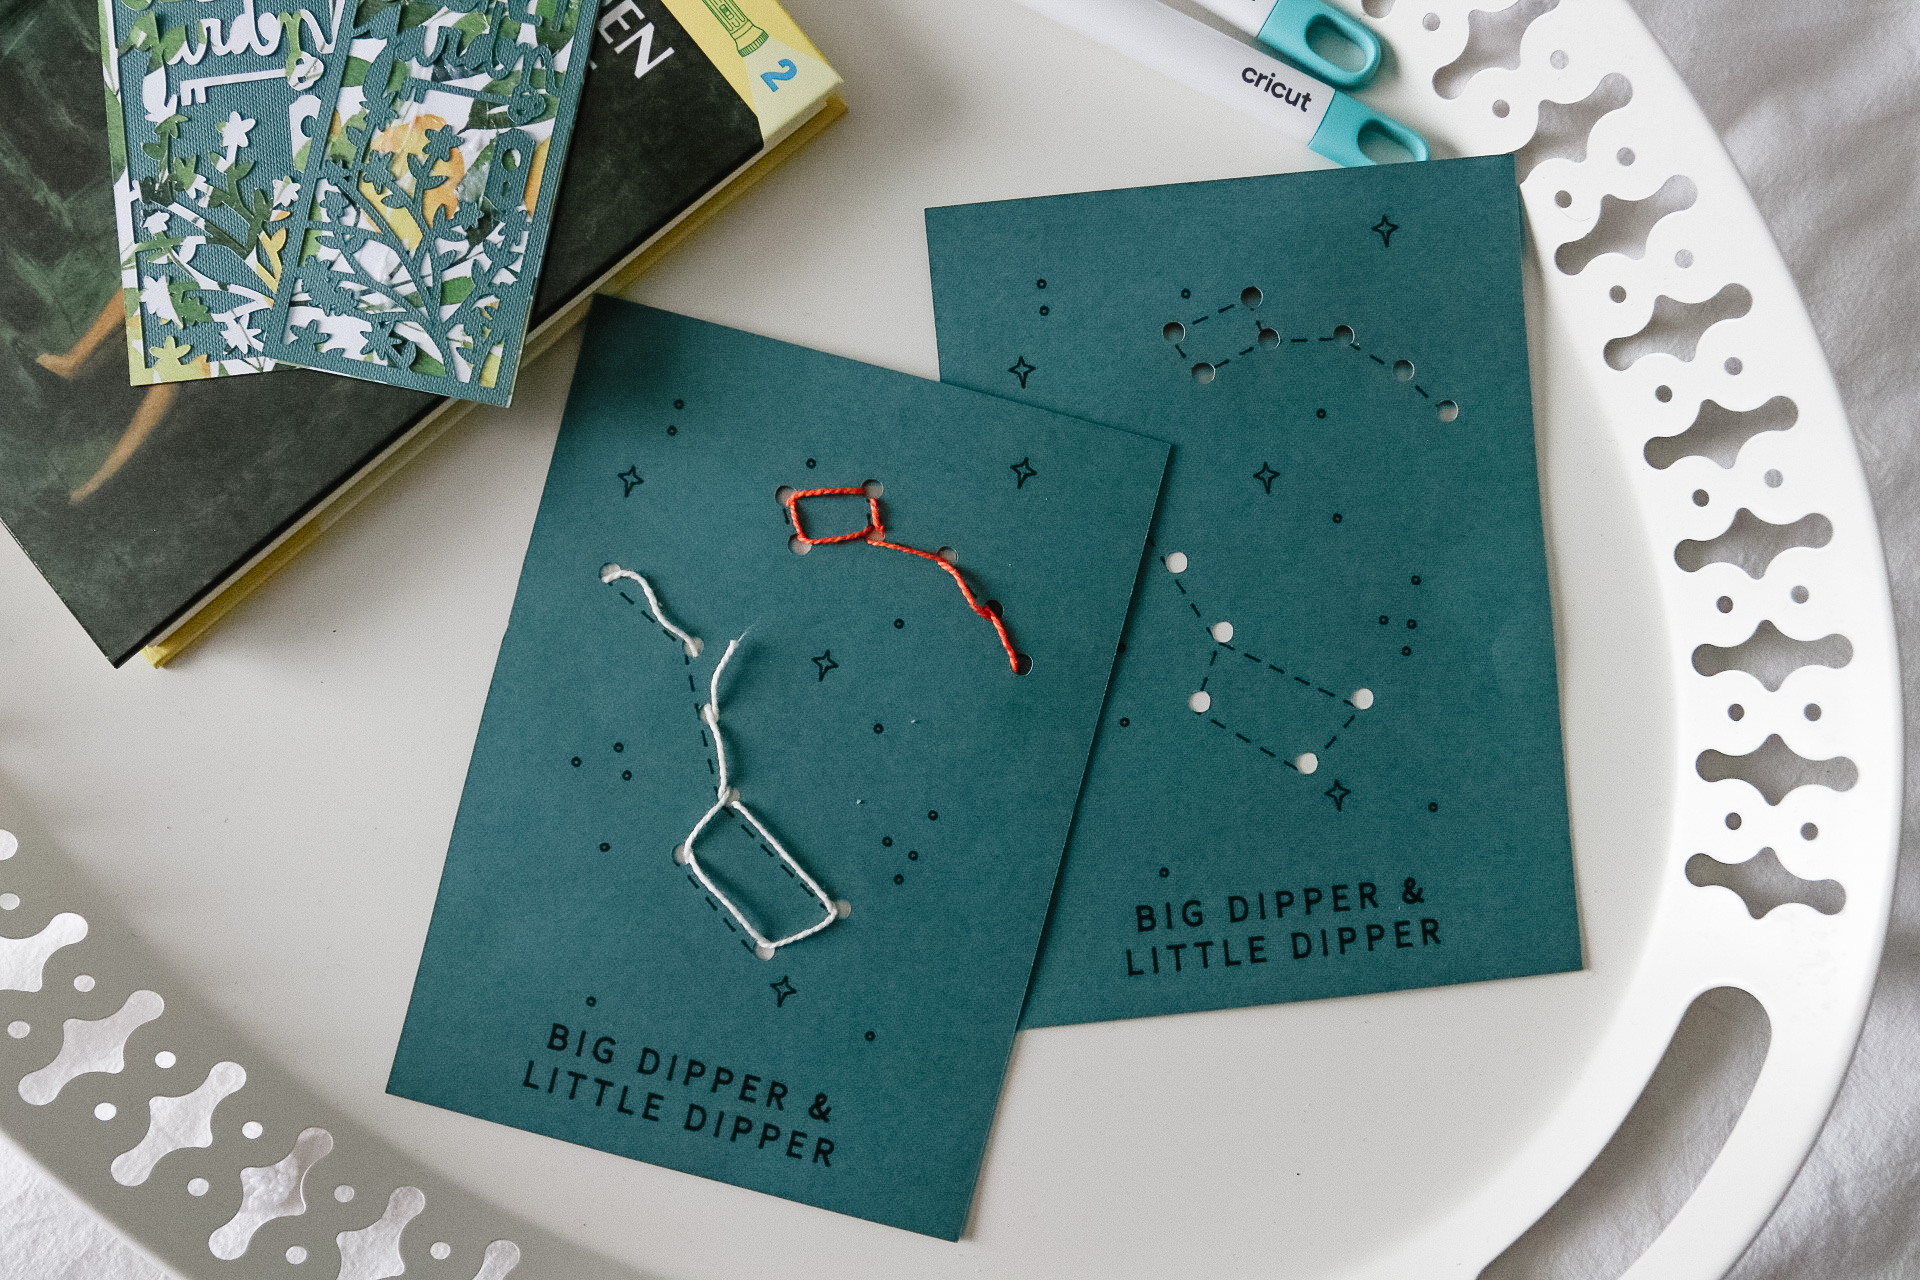 Hannah, from the popular Canadian lifestyle blog Honey & Betts, shares the best Cricut Joy projects for kids to do at home during social distancing. From constellation activities to elegant bookmarks.